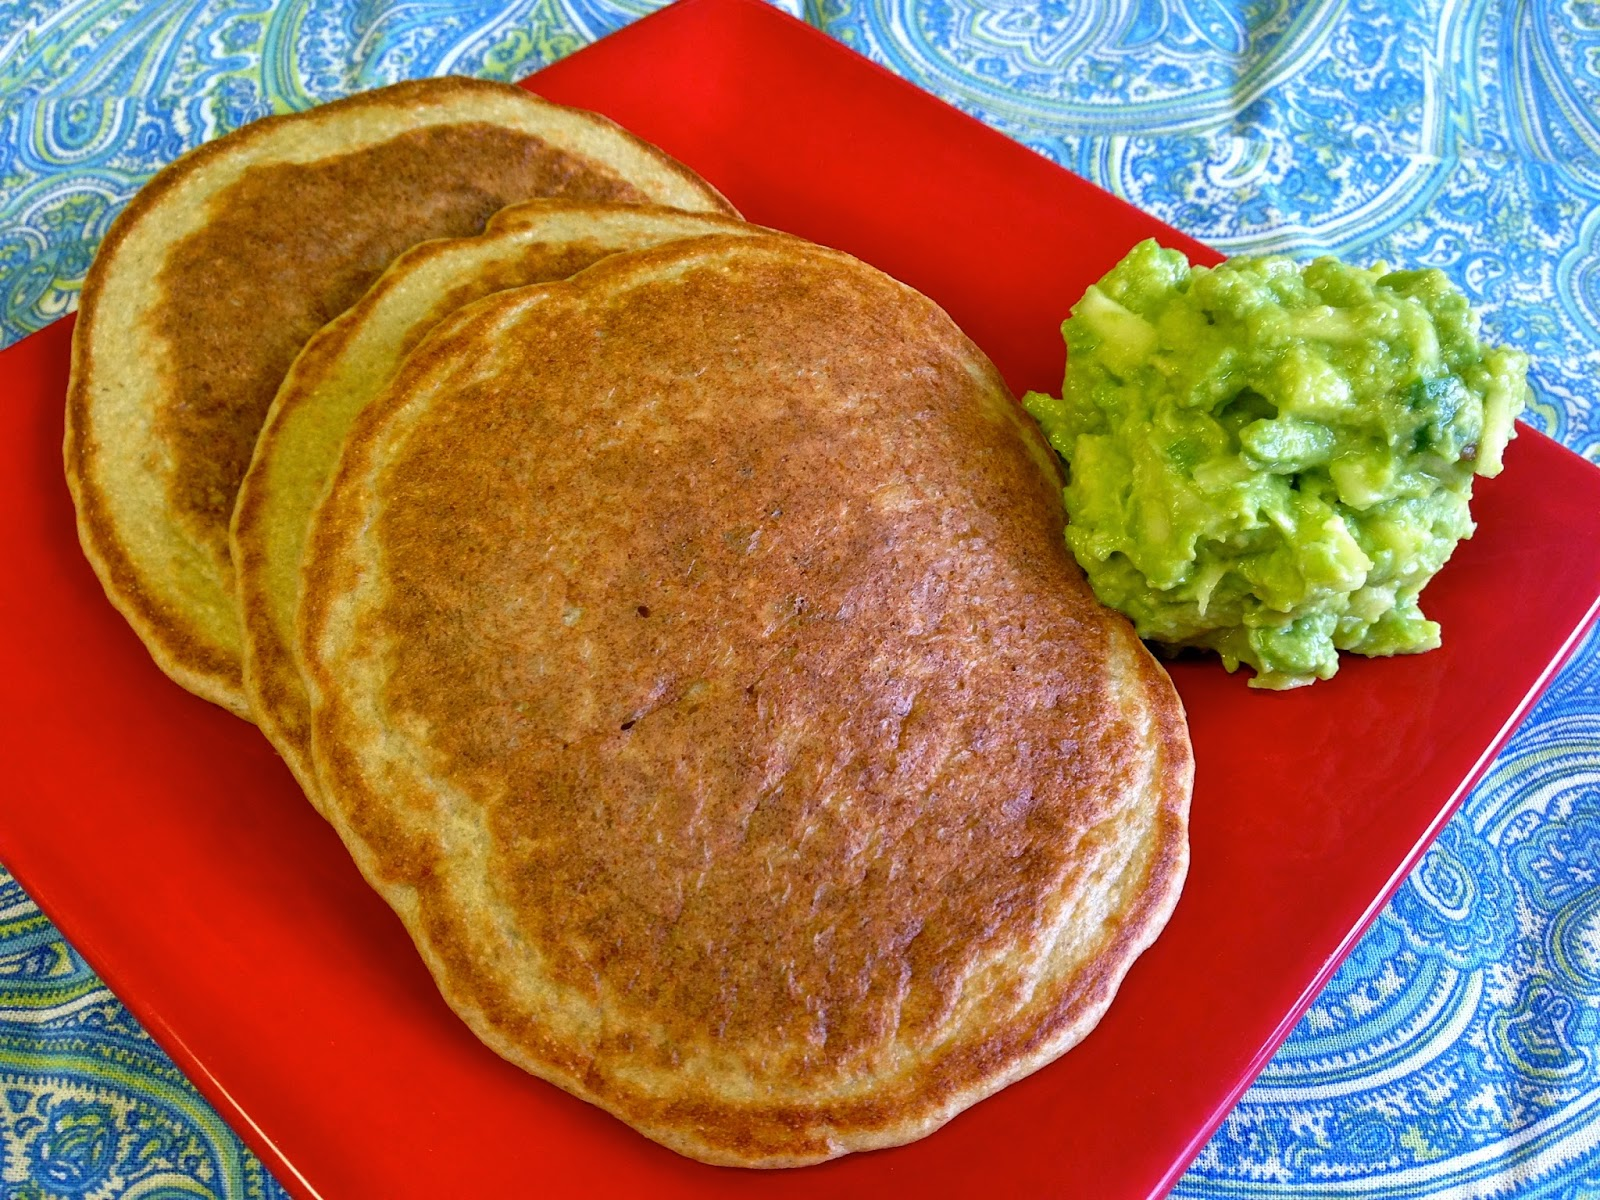 soaked grains/seeds pancakes